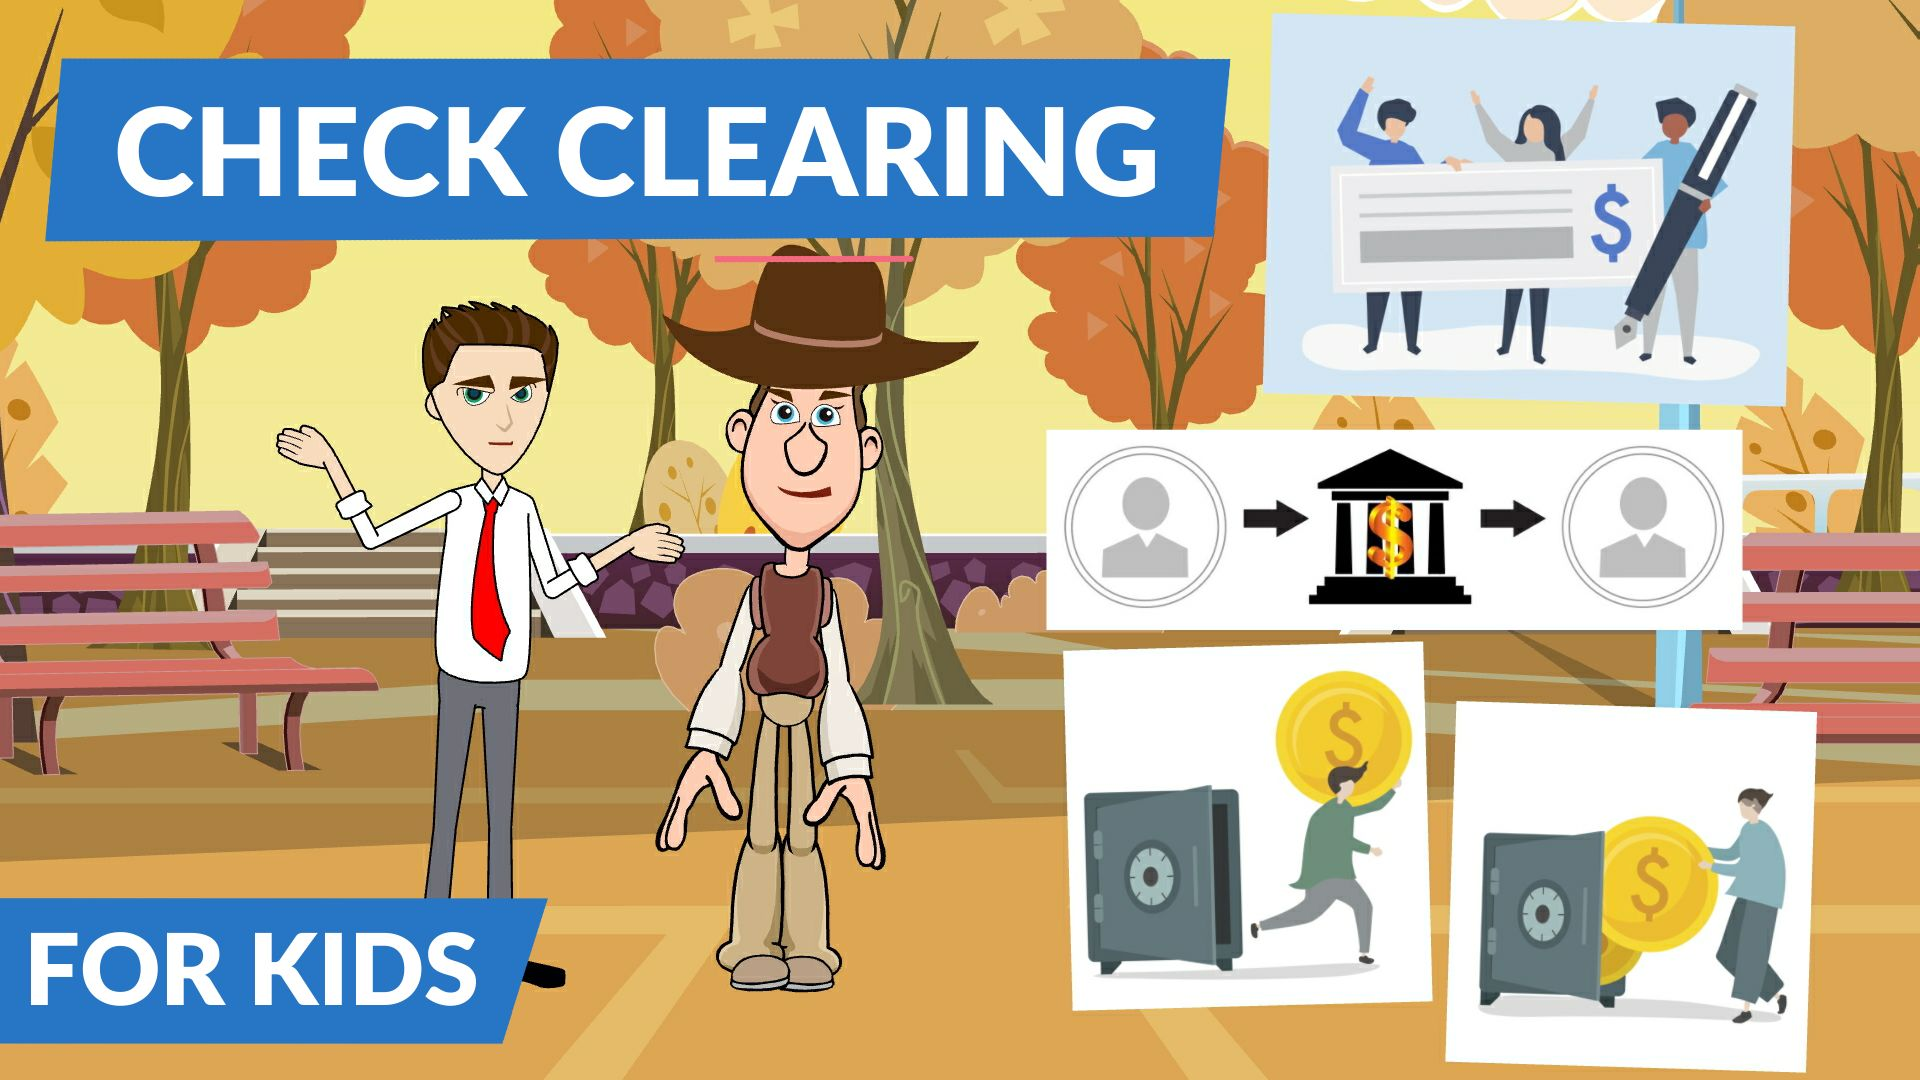 What is clearing of check or check clearing